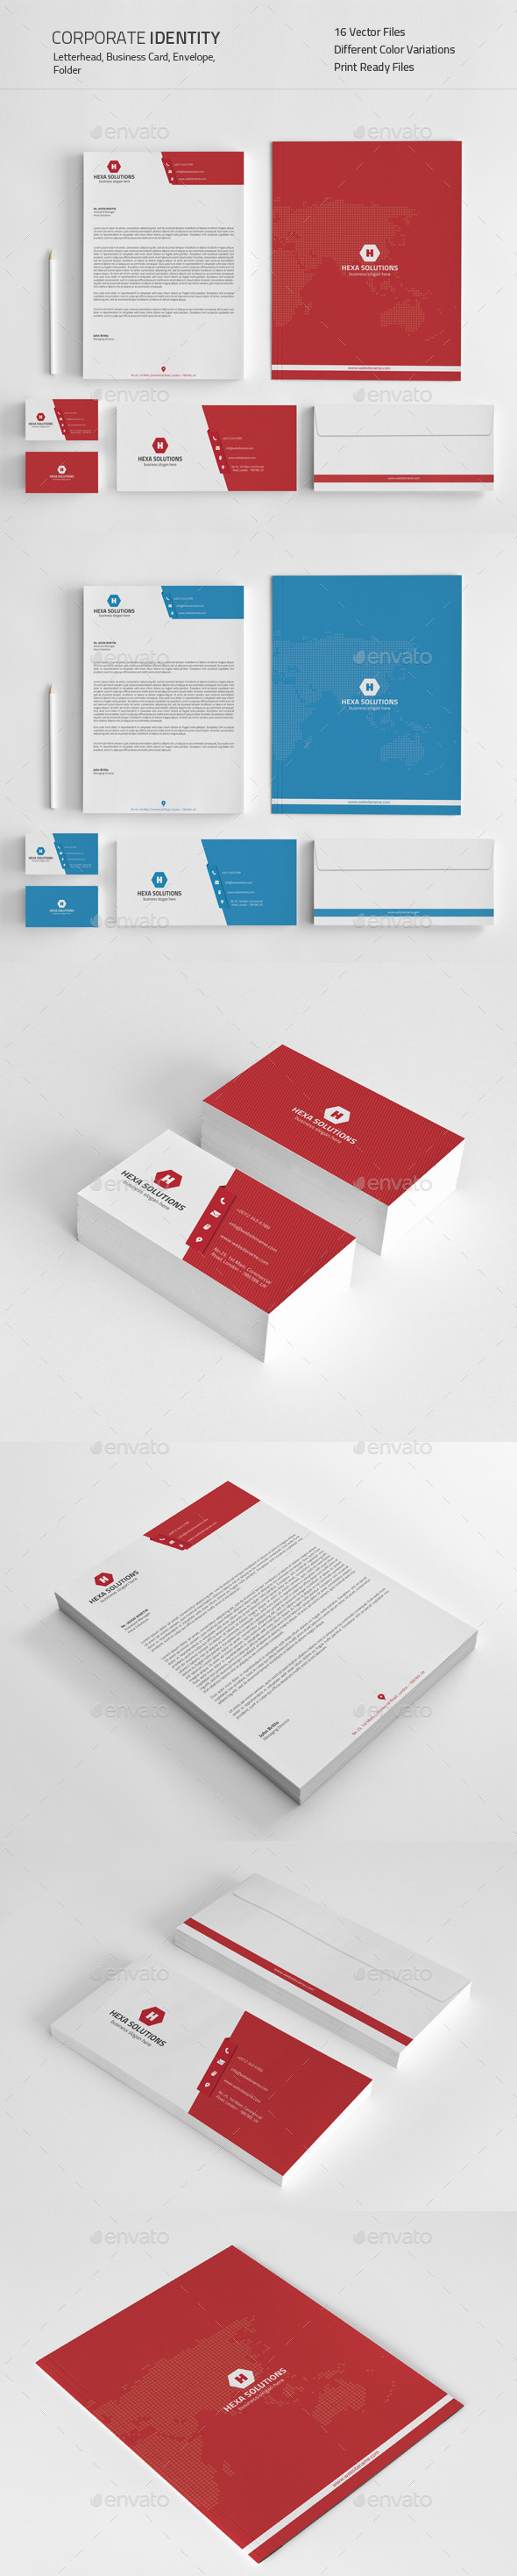 Corporate Identity 03 - Stationery Print Templates